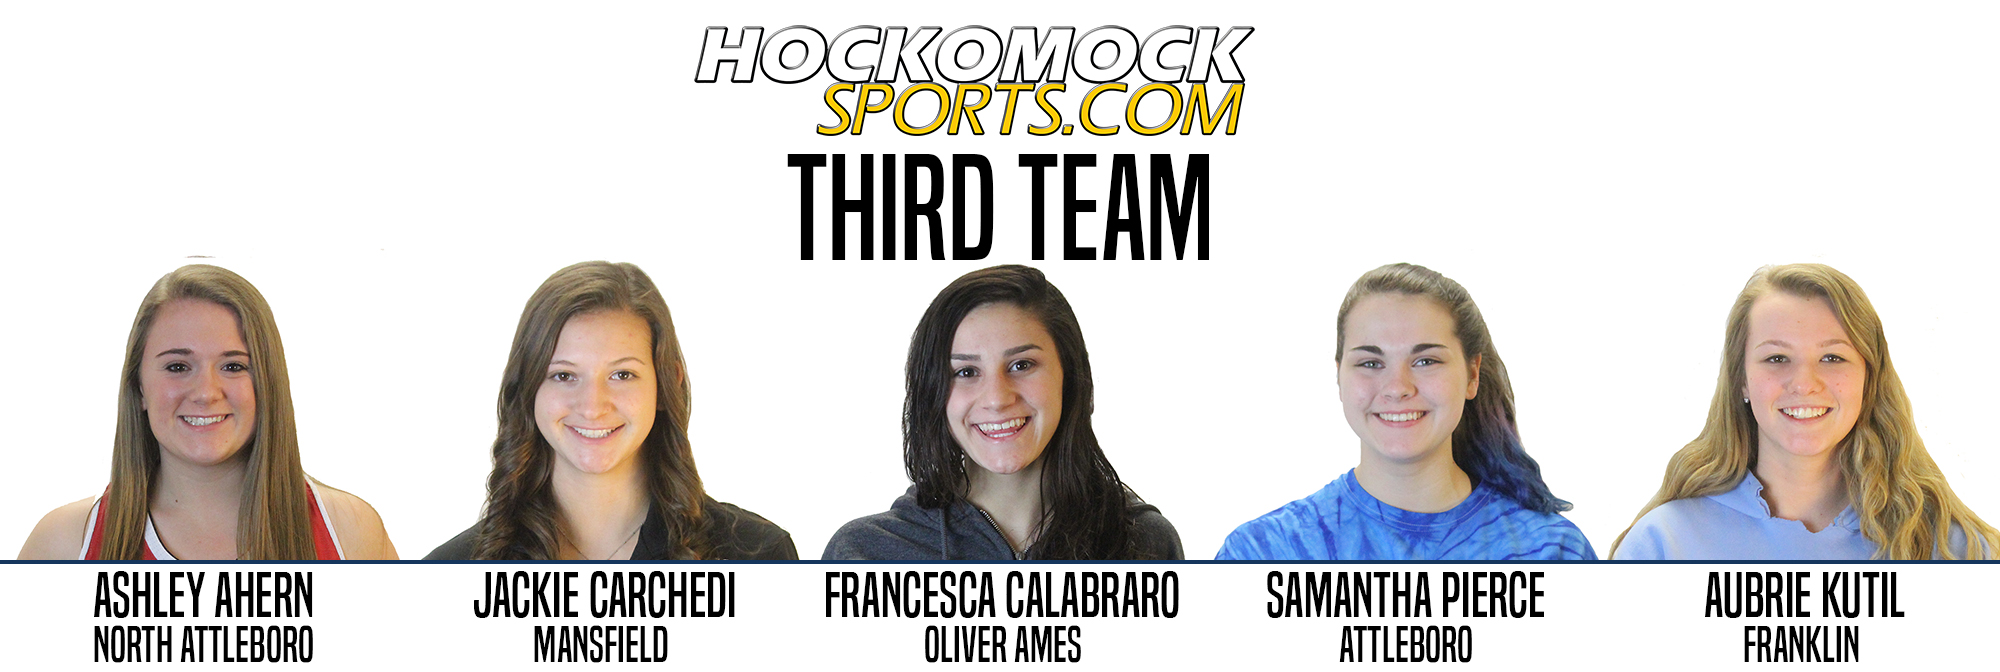 Girls Basketball 3rd Team - Hockomock Sports photo